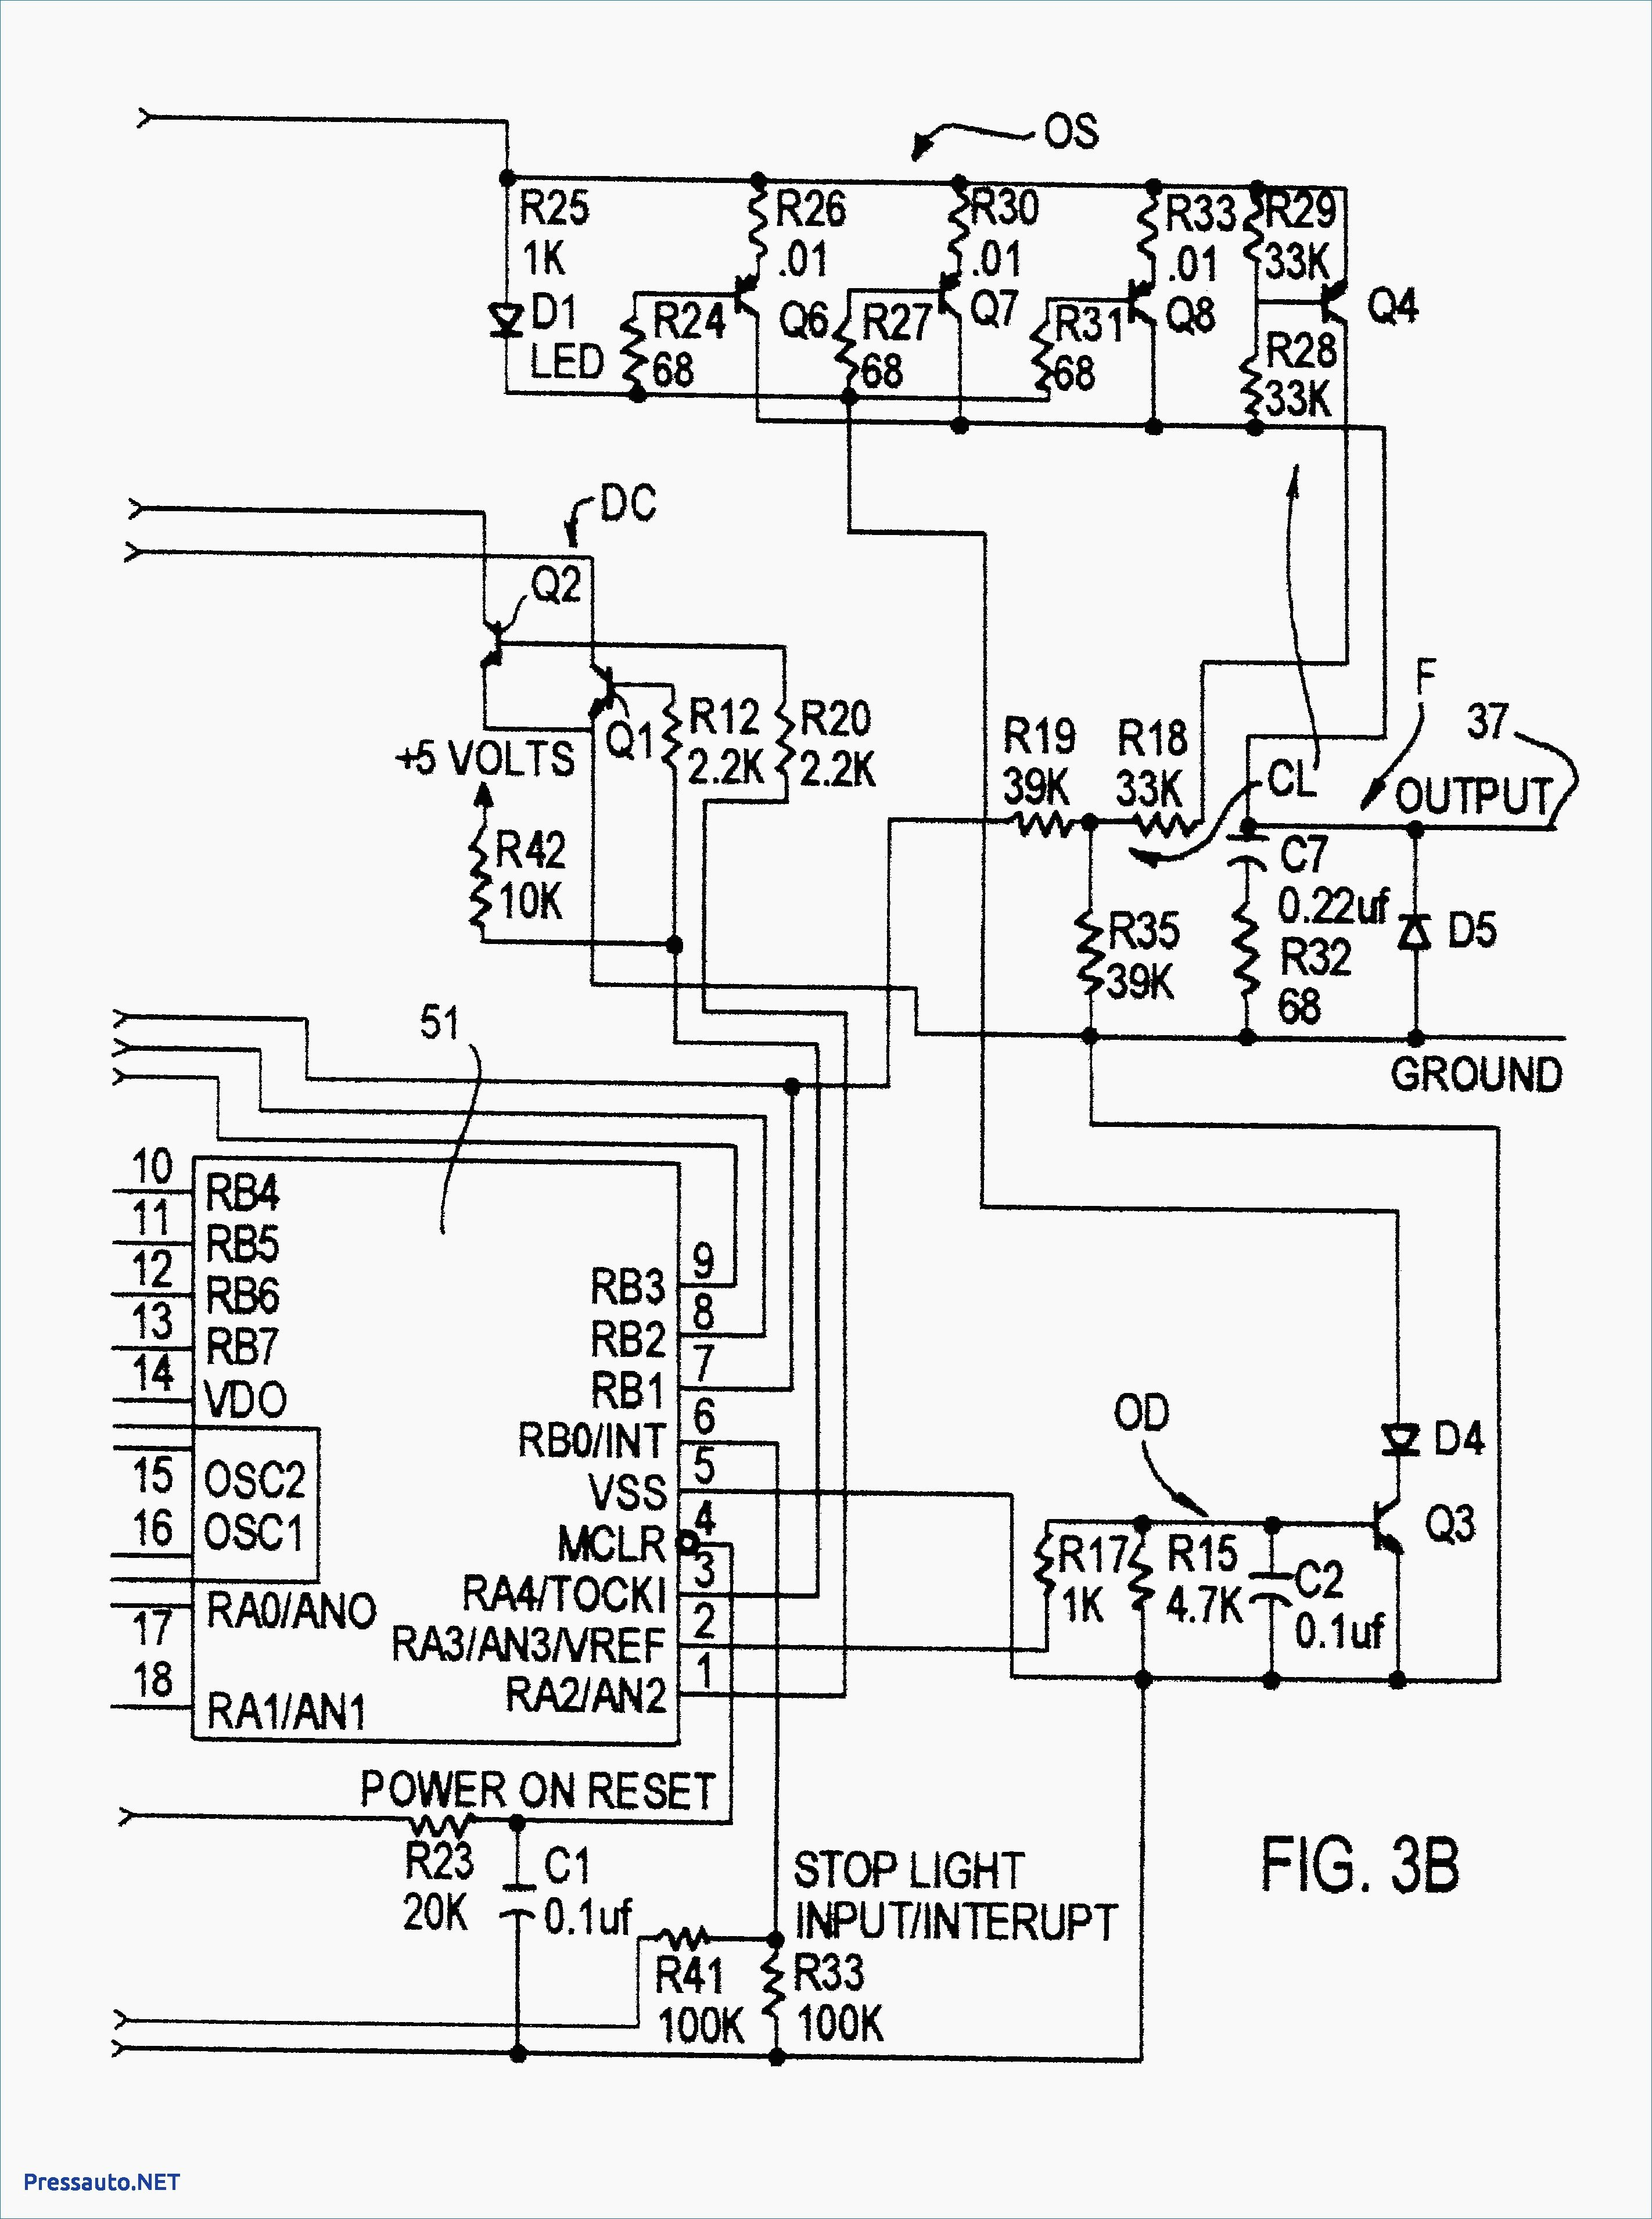 Usb Connector Wire Diagram Wiring Auto Diagrams Instructions